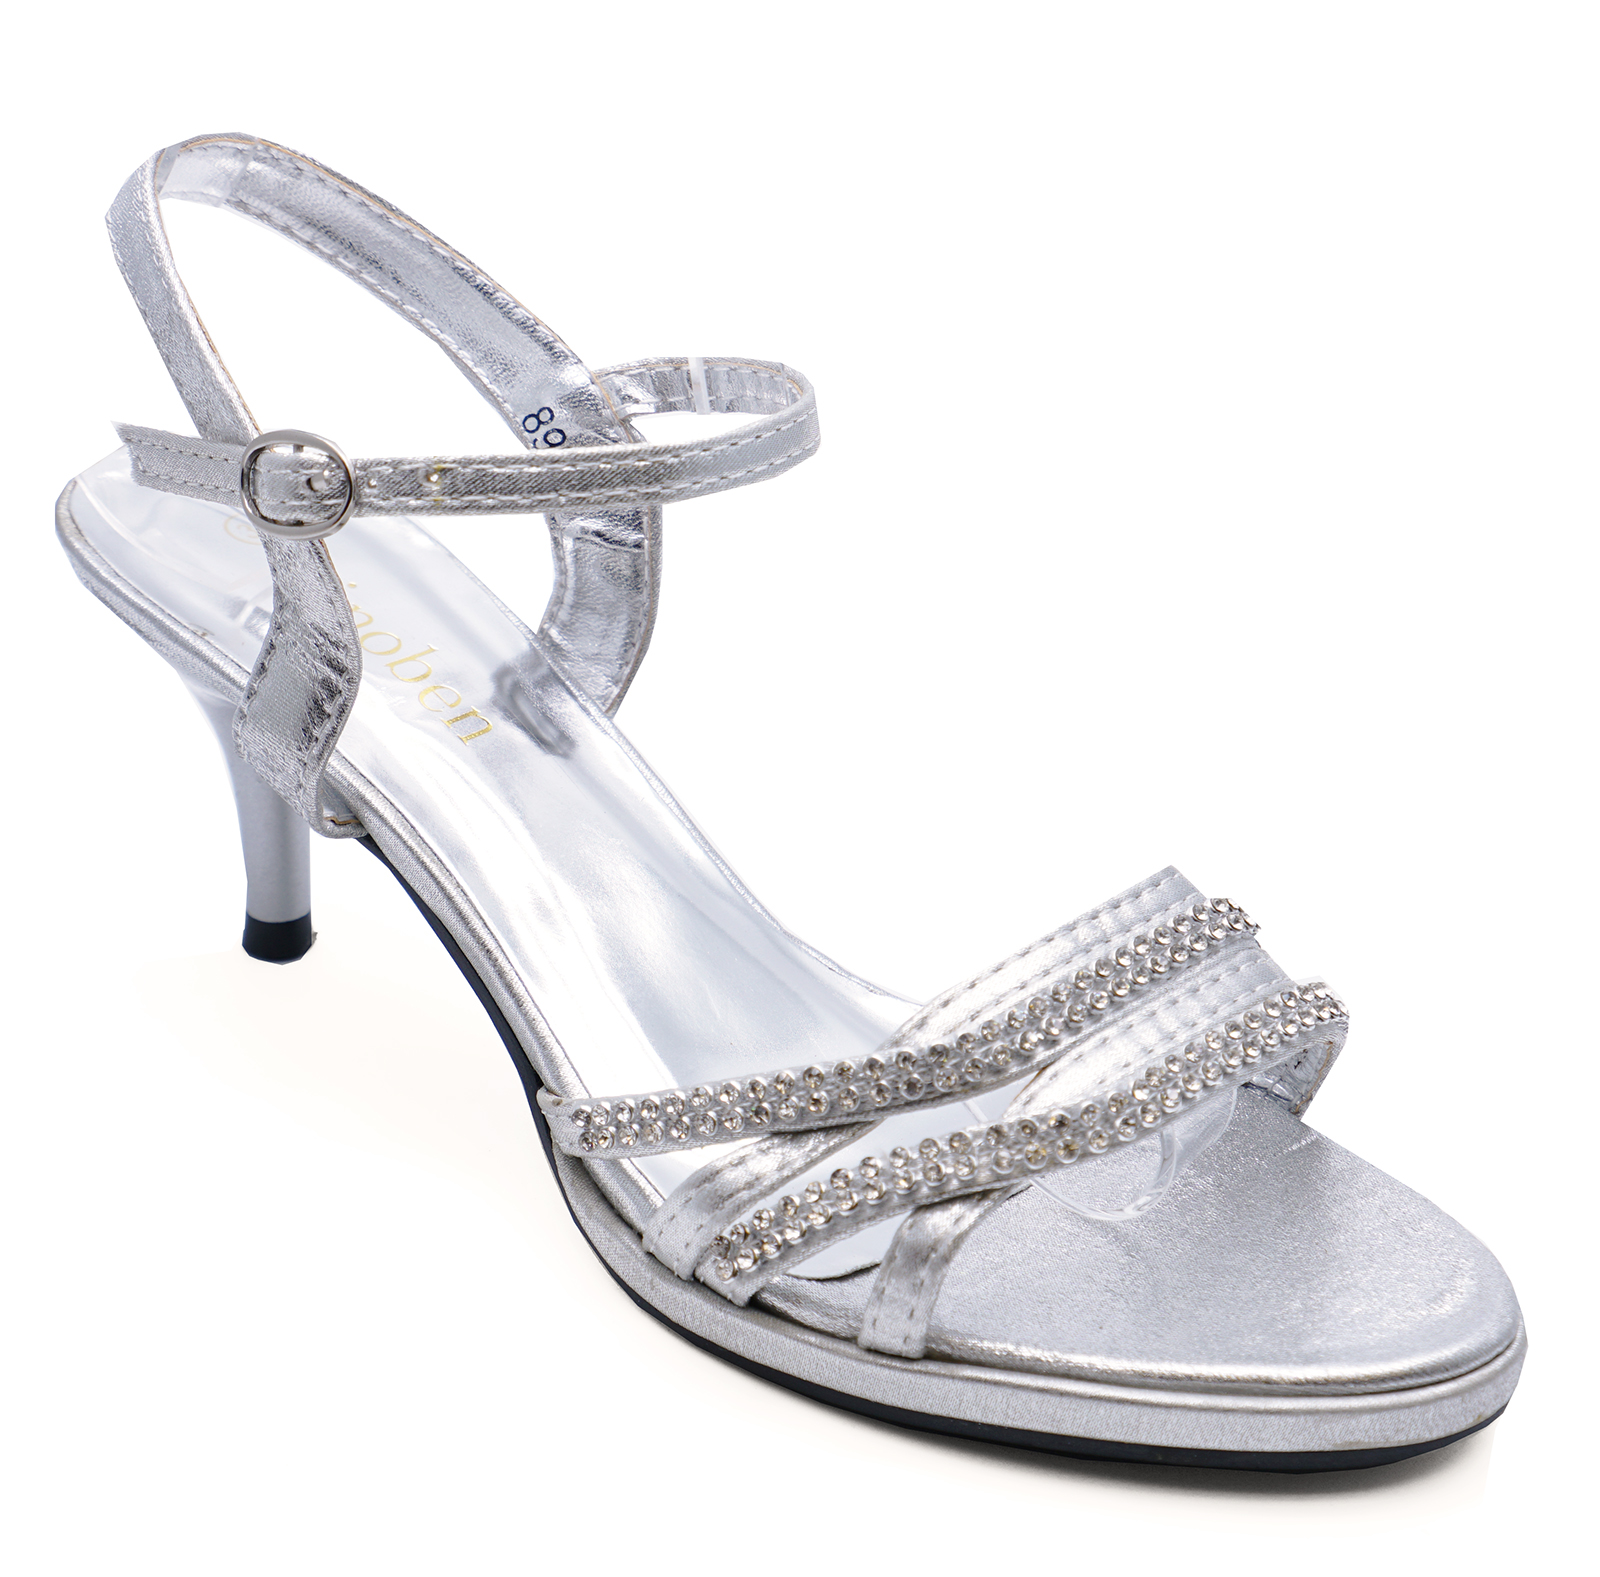 3638199fb297 Details about LADIES SILVER DIAMANTE WEDDING PARTY EVENING PROM STRAPPY SANDALS  SHOES SIZE 3-8